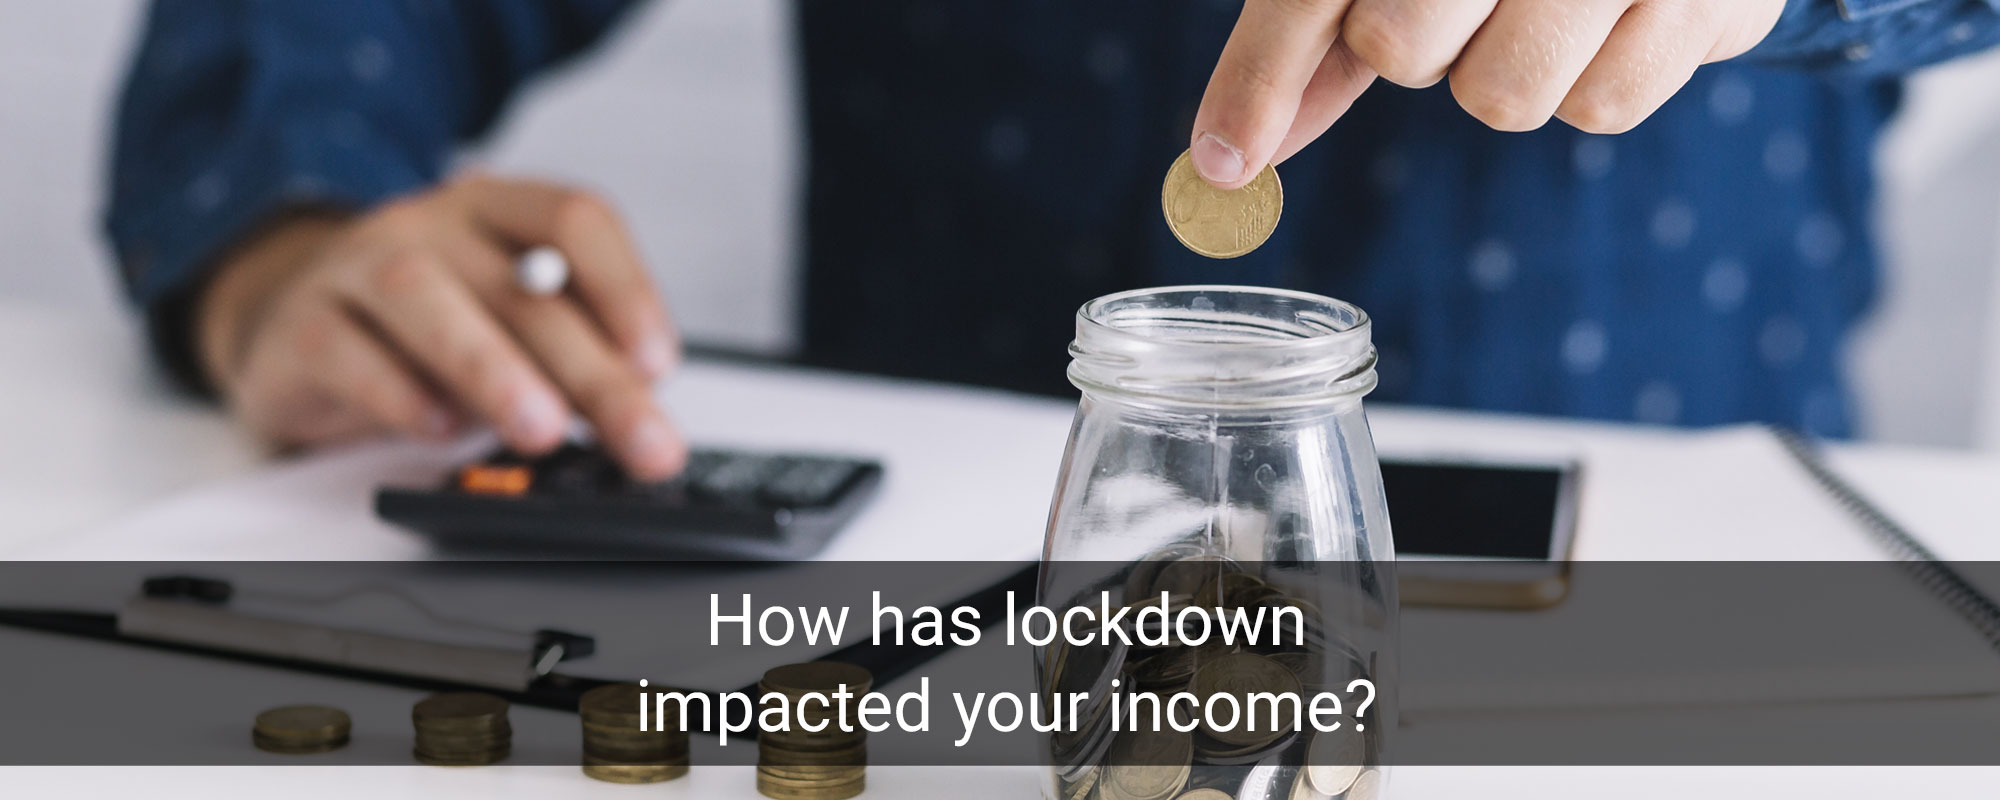 How has lockdown impacted your income?